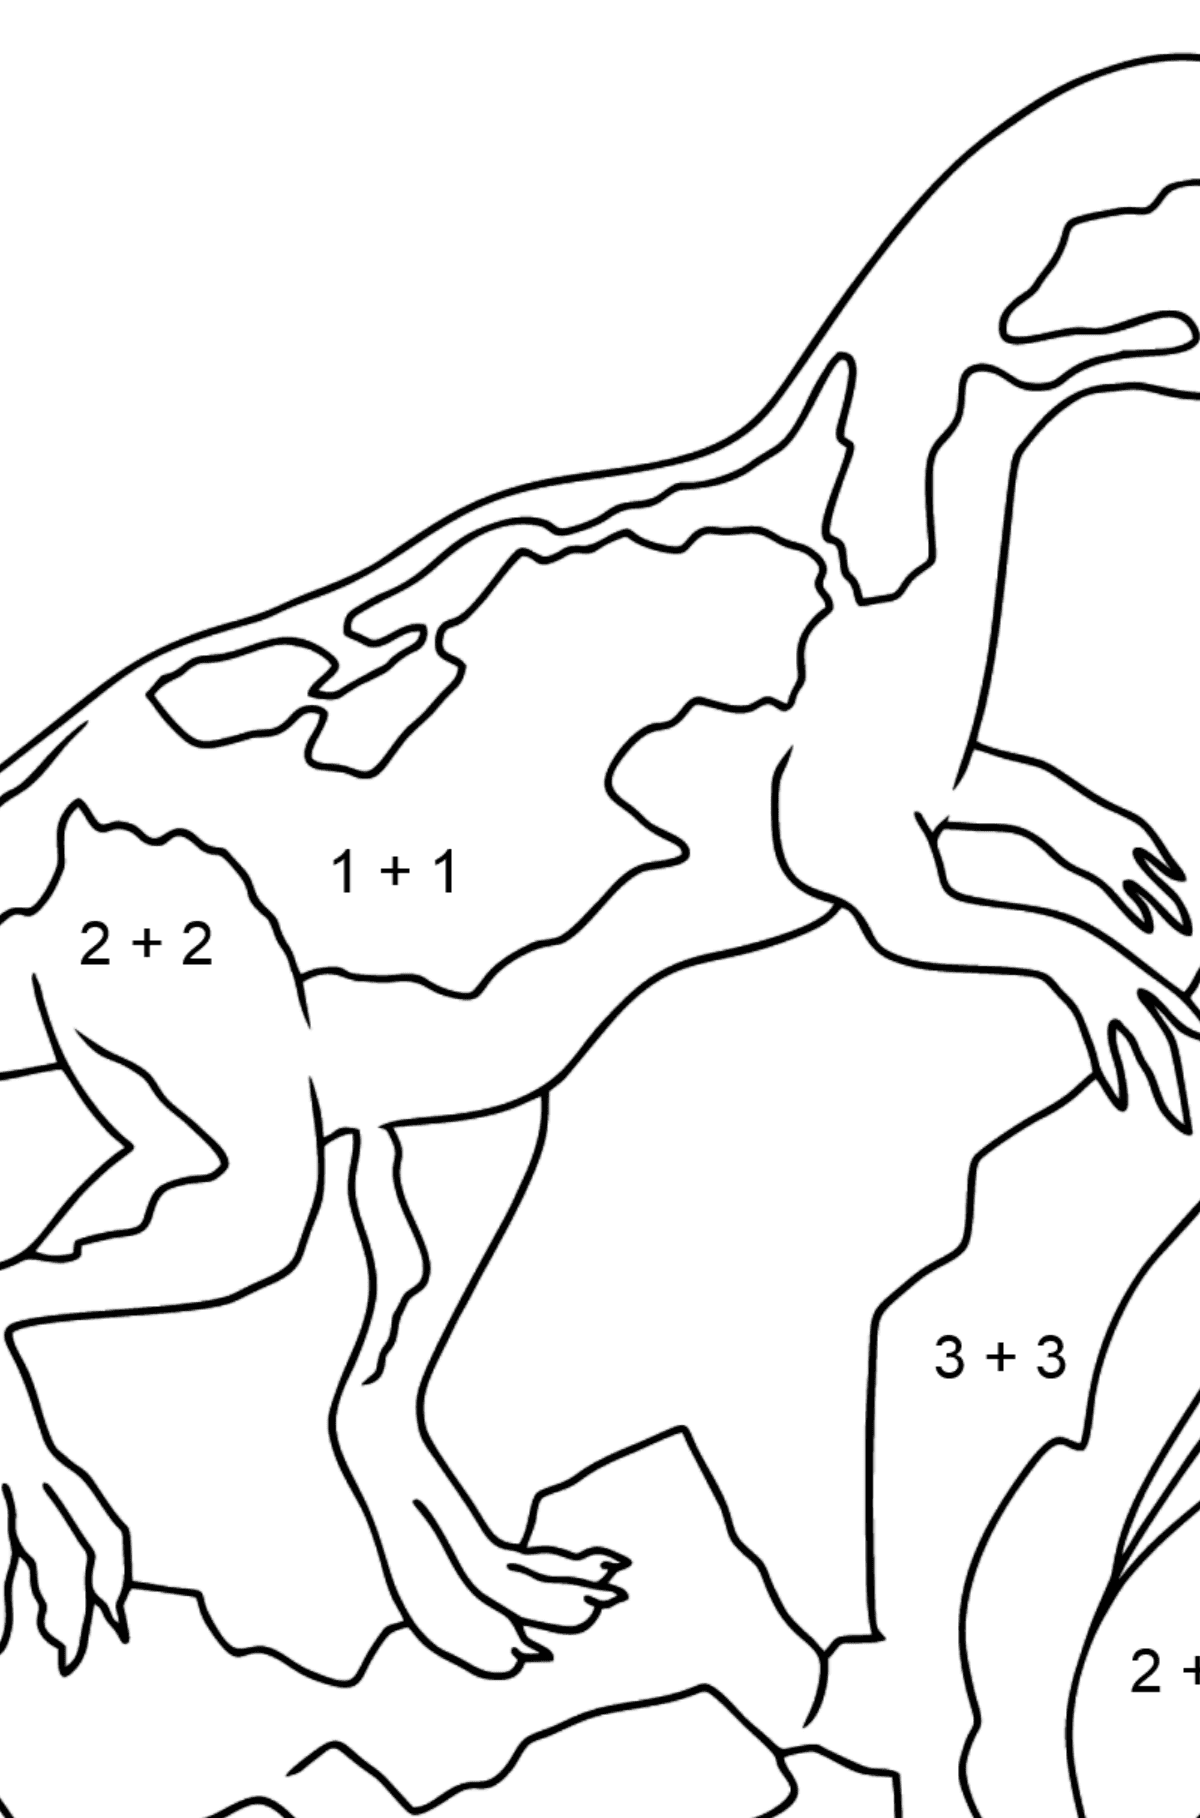 Coloring Page - A Dinosaur is Looking for Food - Math Coloring - Addition for Kids